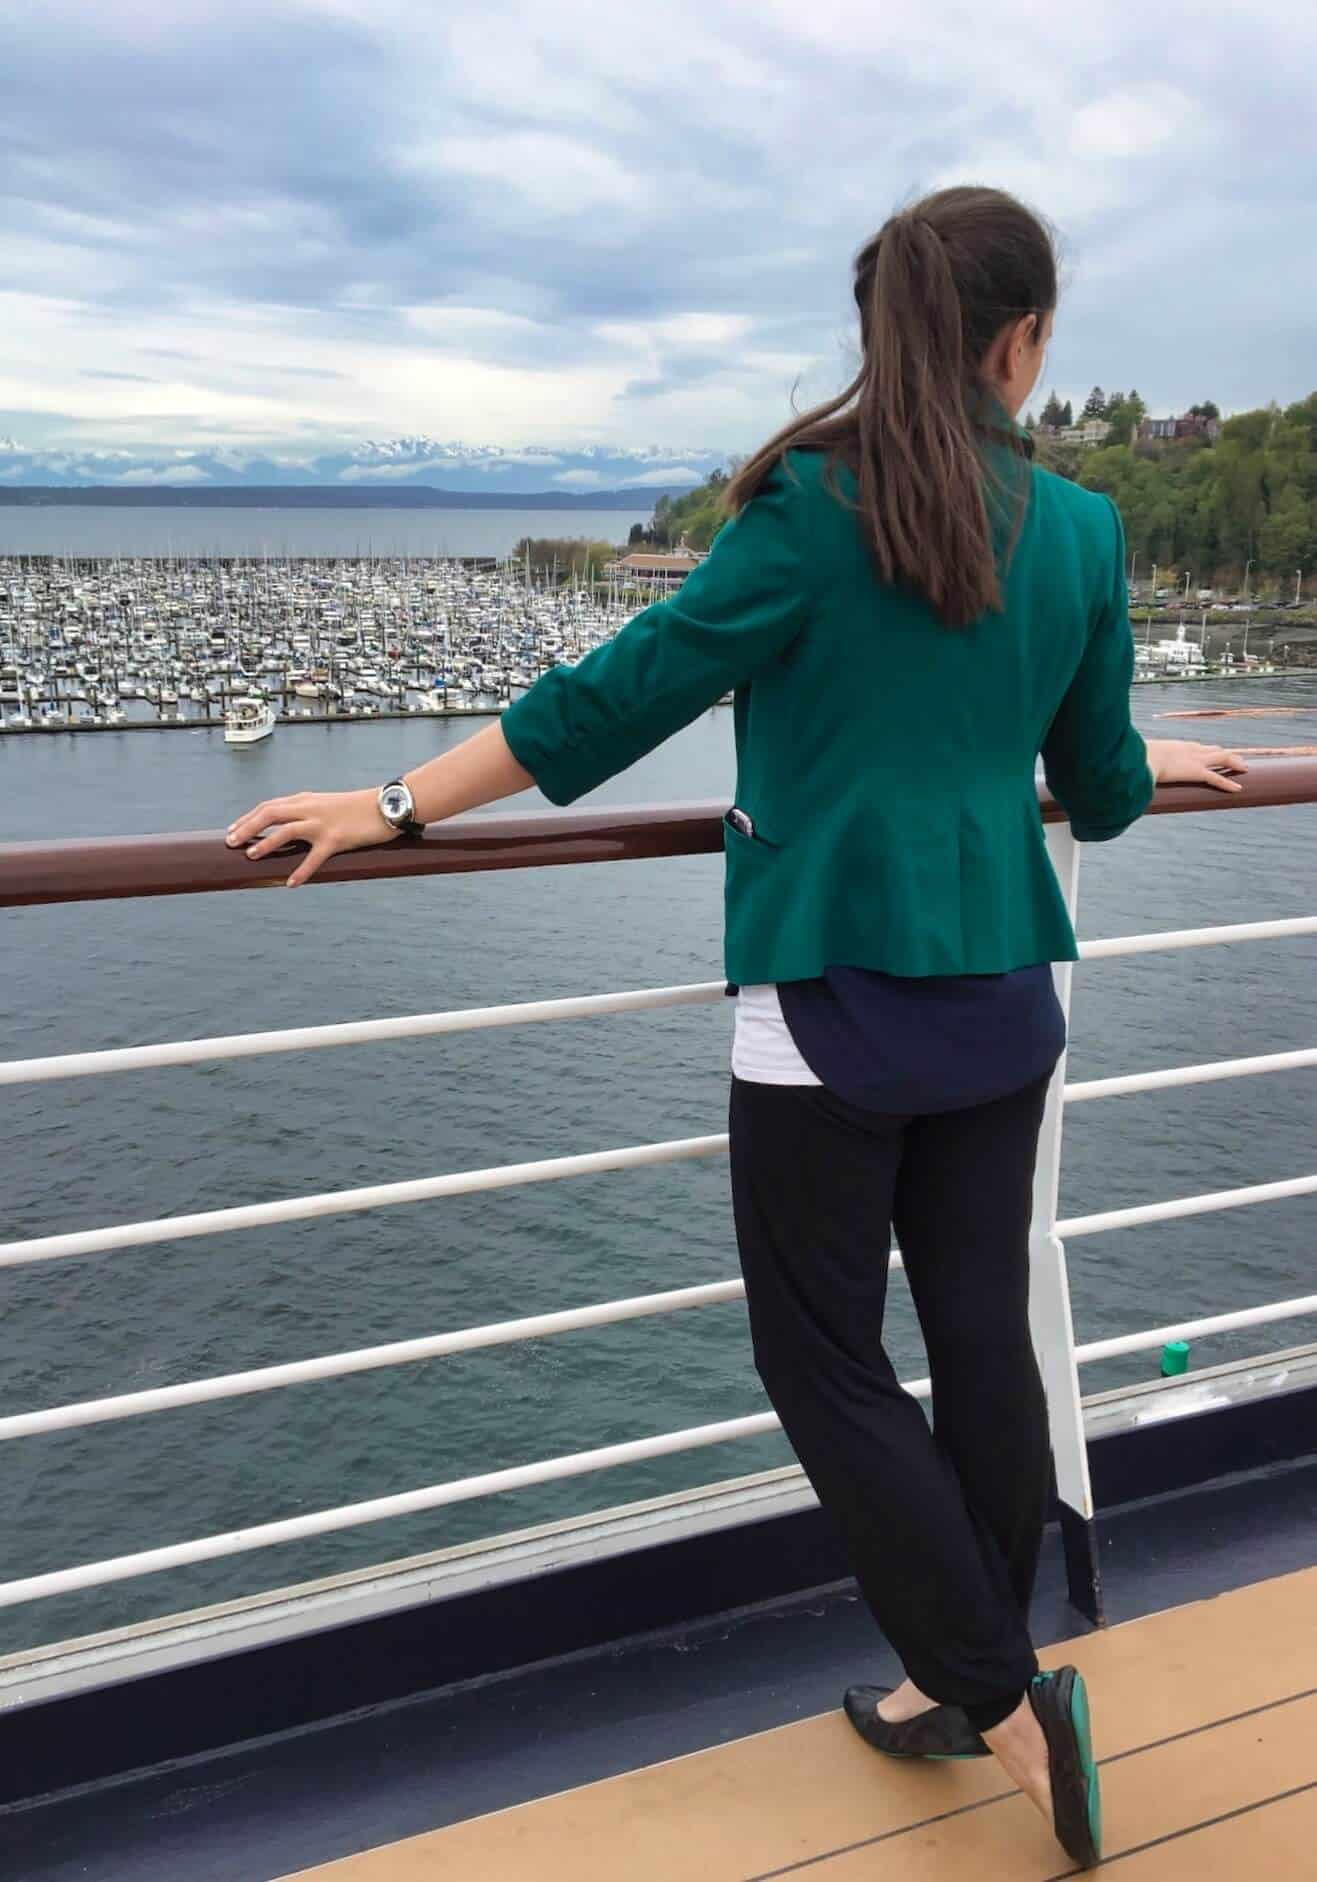 Alaska Cruise Excursions in Seattle